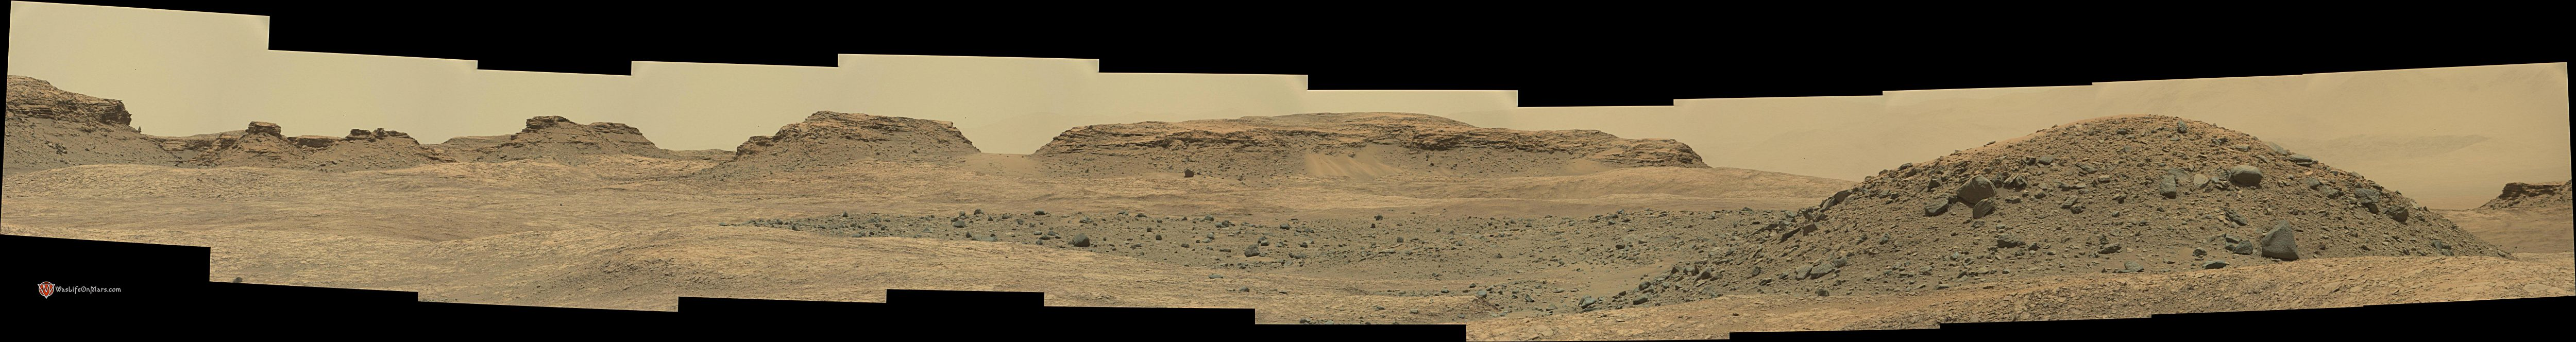 panoramic curiosity rover view 1e - sol 1387 - was life on mars